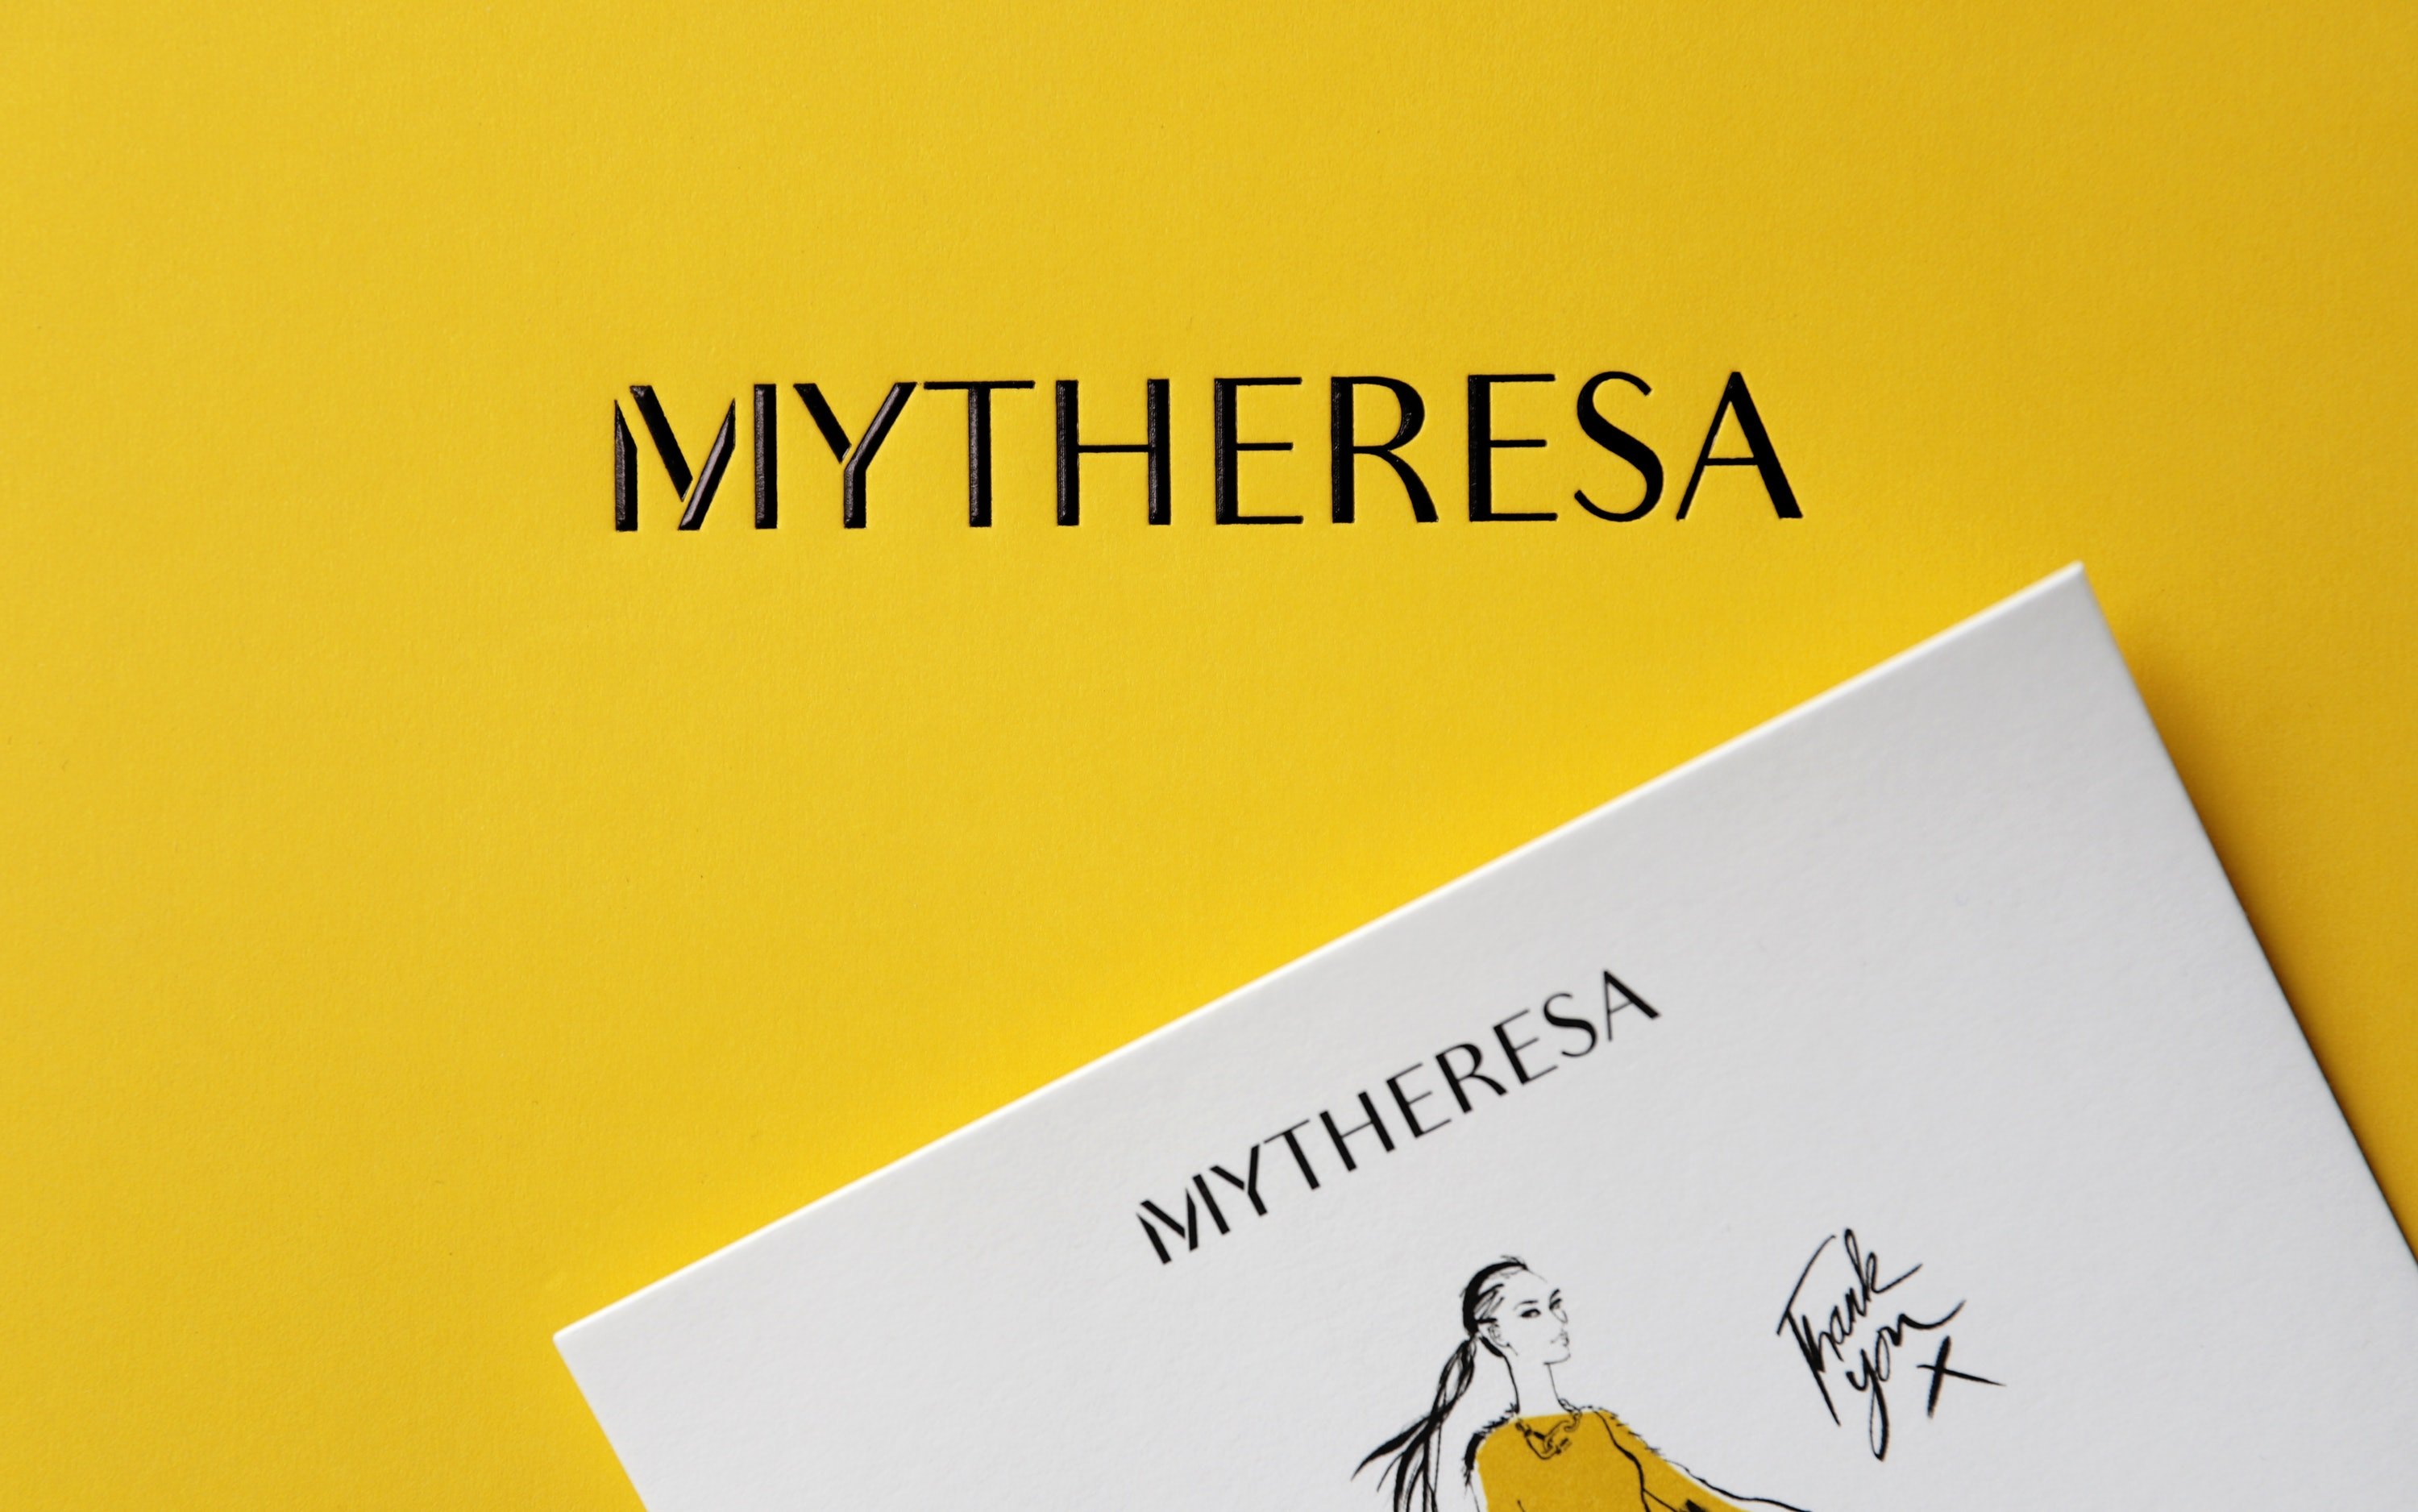 Fashion retailer Mytheresa launches diversity and inclusion committee